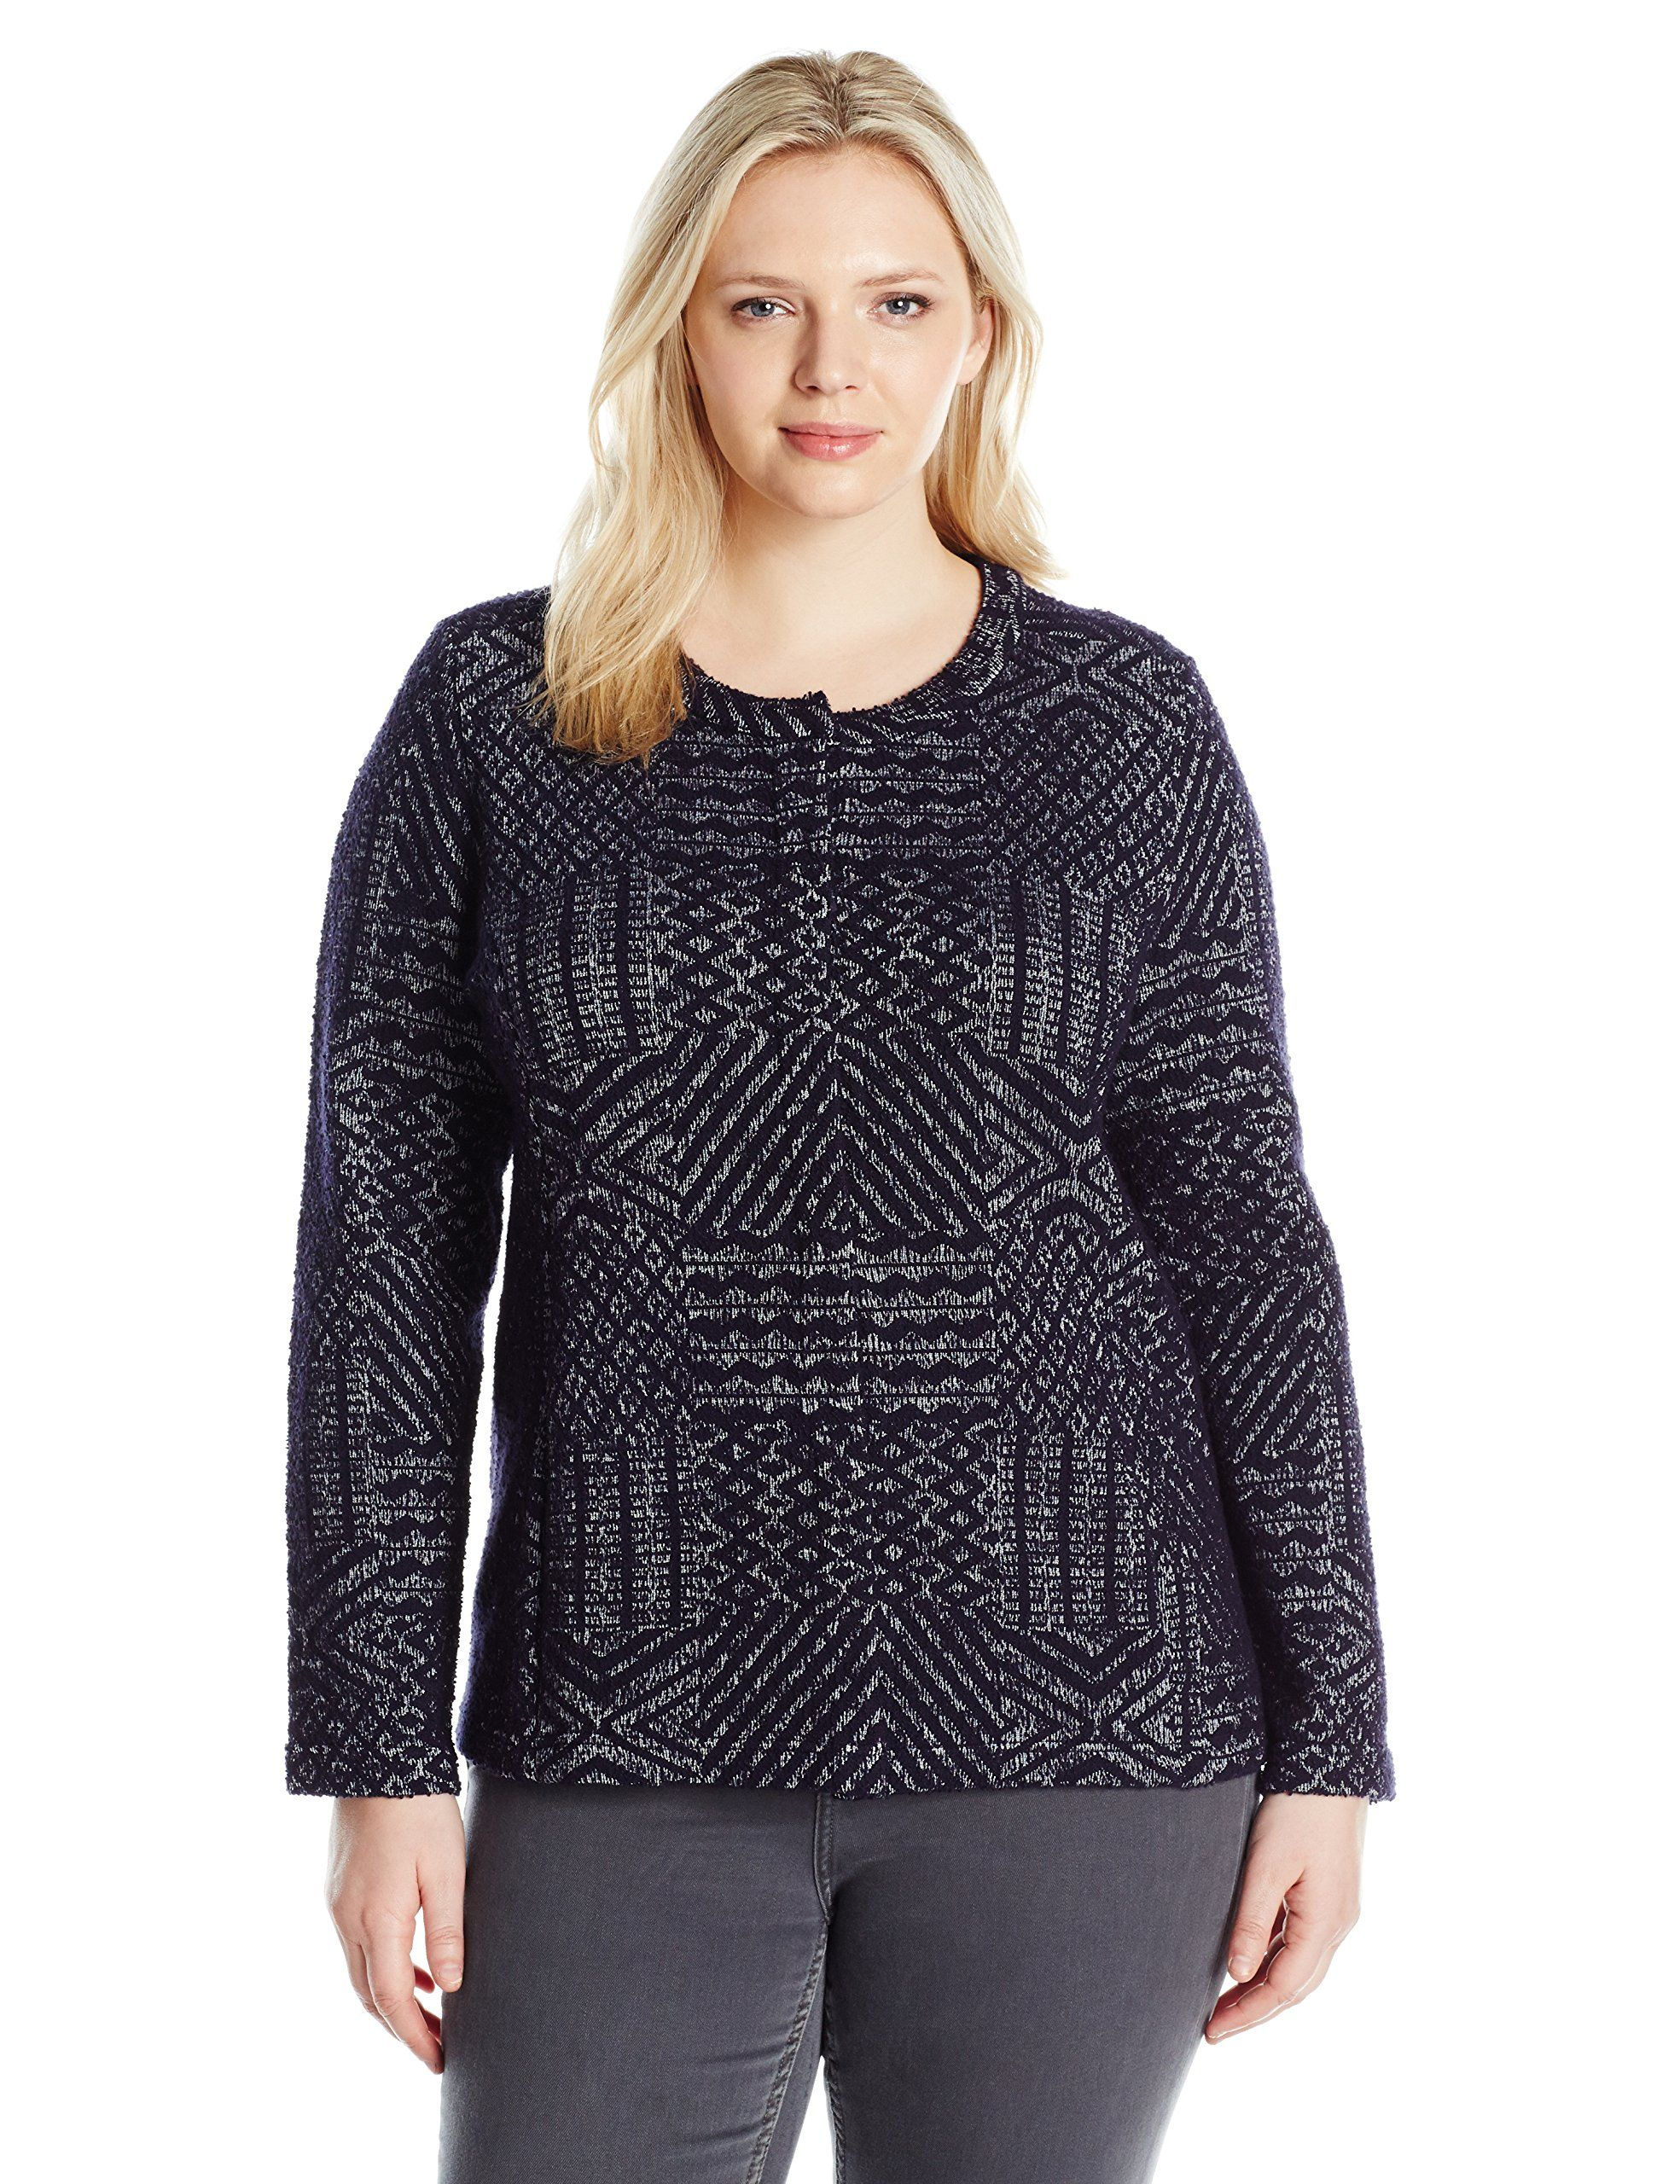 caebecea52 Lucky Brand Women s Plus Size Jacquard Sweater